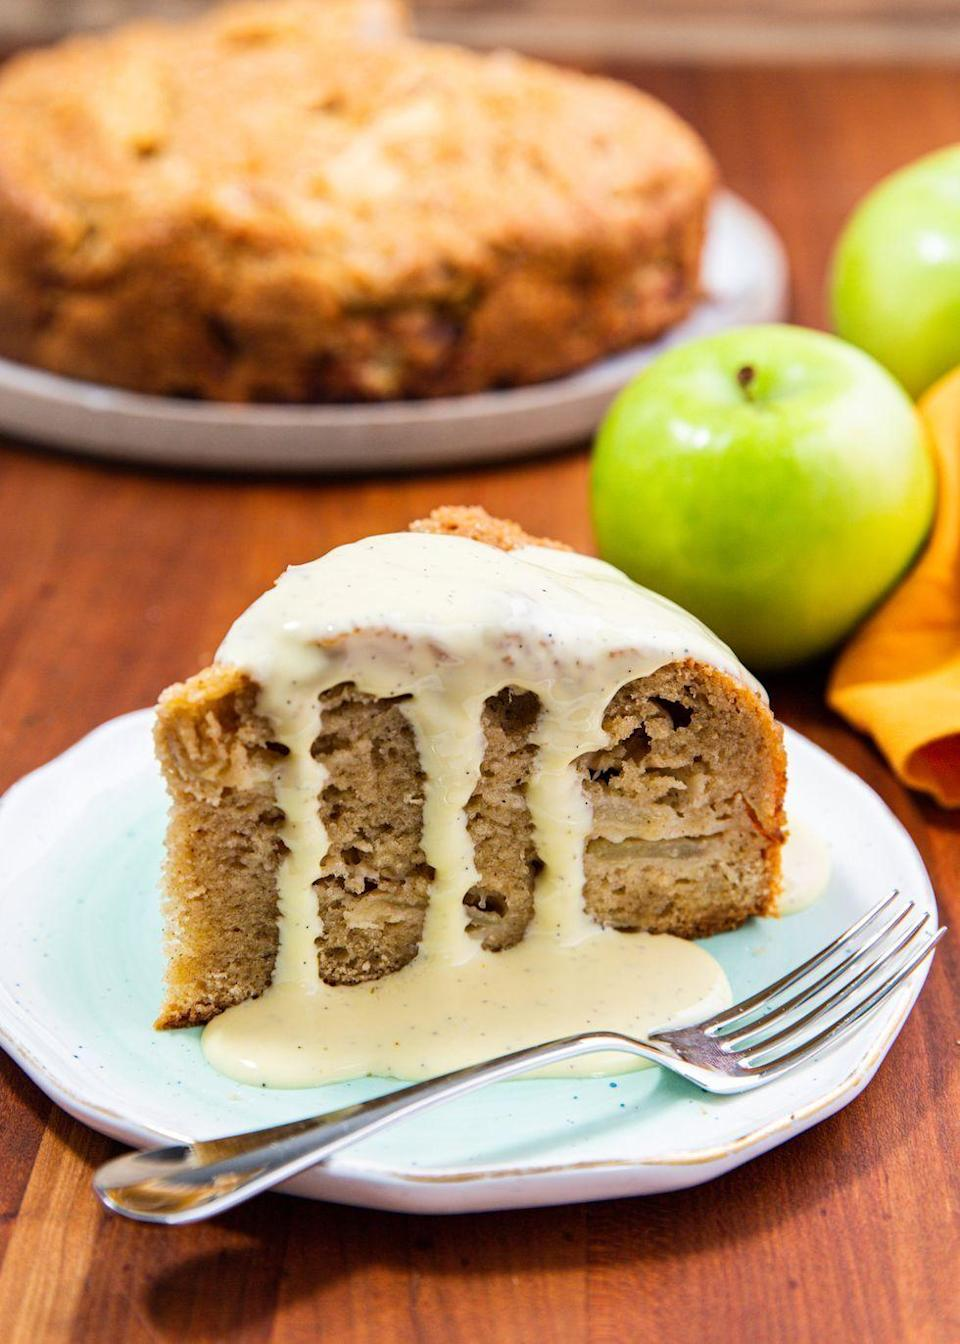 """<p>LOOK at how beautiful this is!</p><p>Get the recipe from <a href=""""https://www.delish.com/cooking/recipe-ideas/a30781773/irish-apple-cake/"""" rel=""""nofollow noopener"""" target=""""_blank"""" data-ylk=""""slk:Delish."""" class=""""link rapid-noclick-resp"""">Delish. </a></p>"""